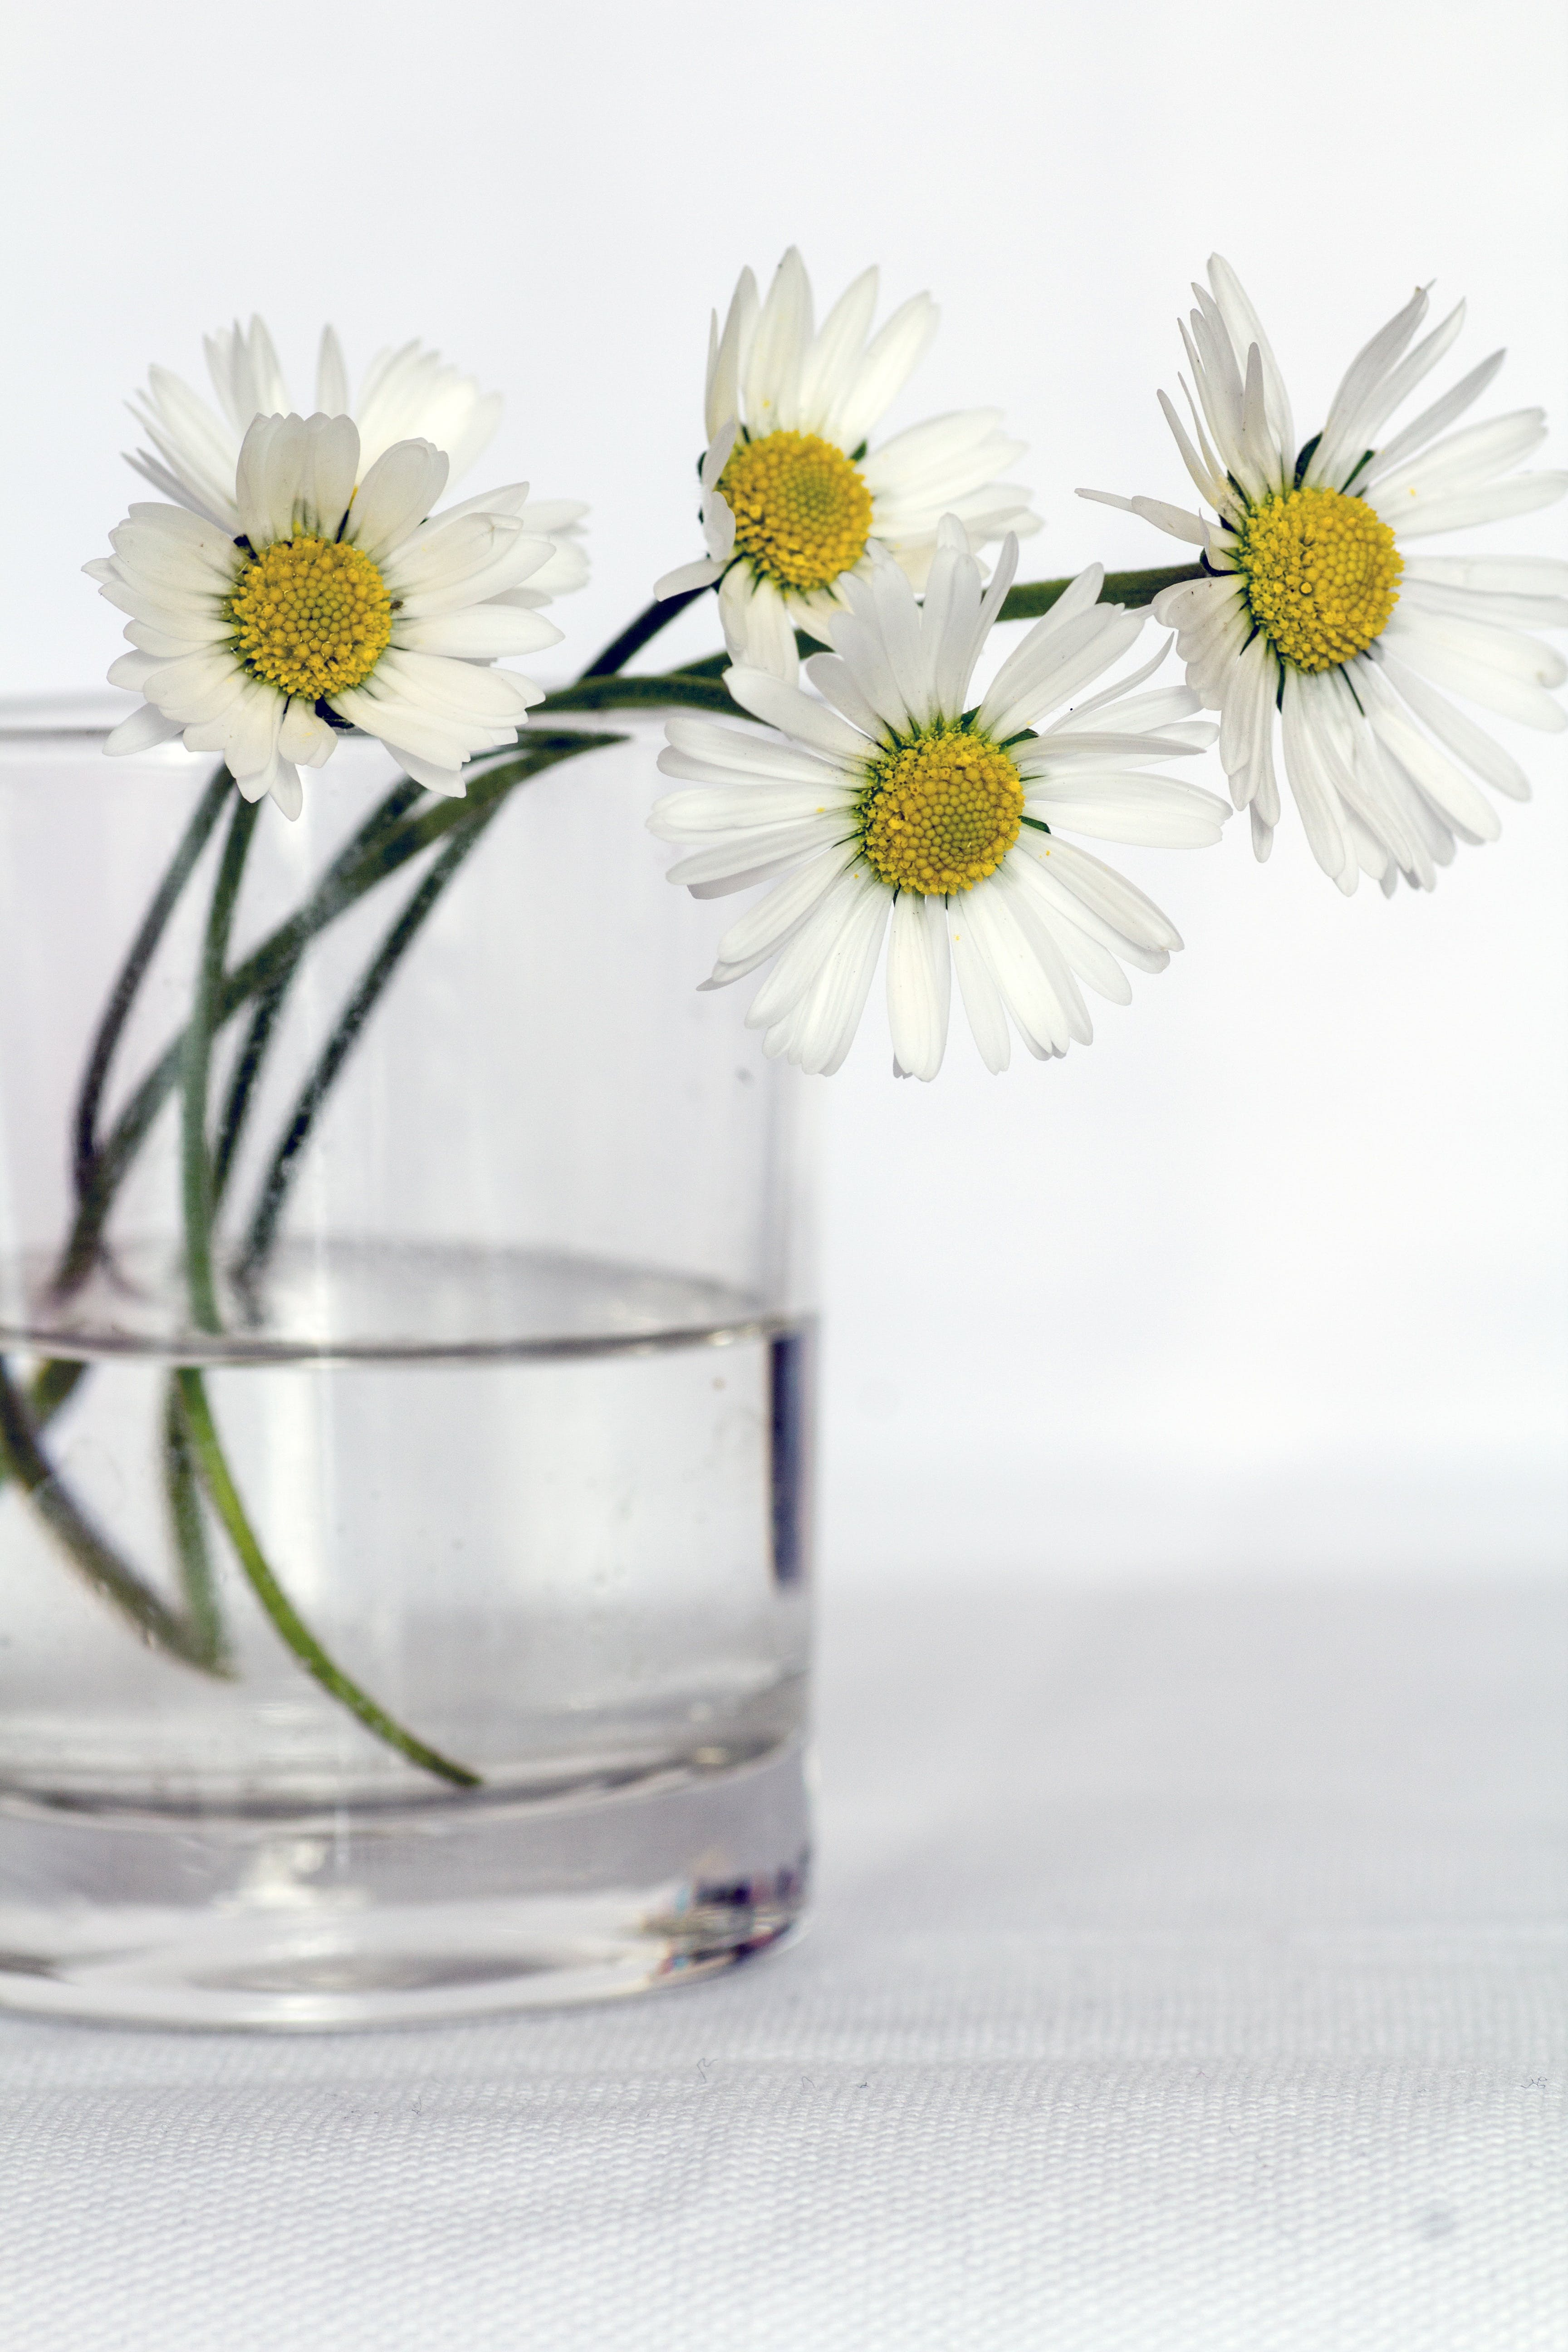 Four White Daisy Flowers in Clear Vase